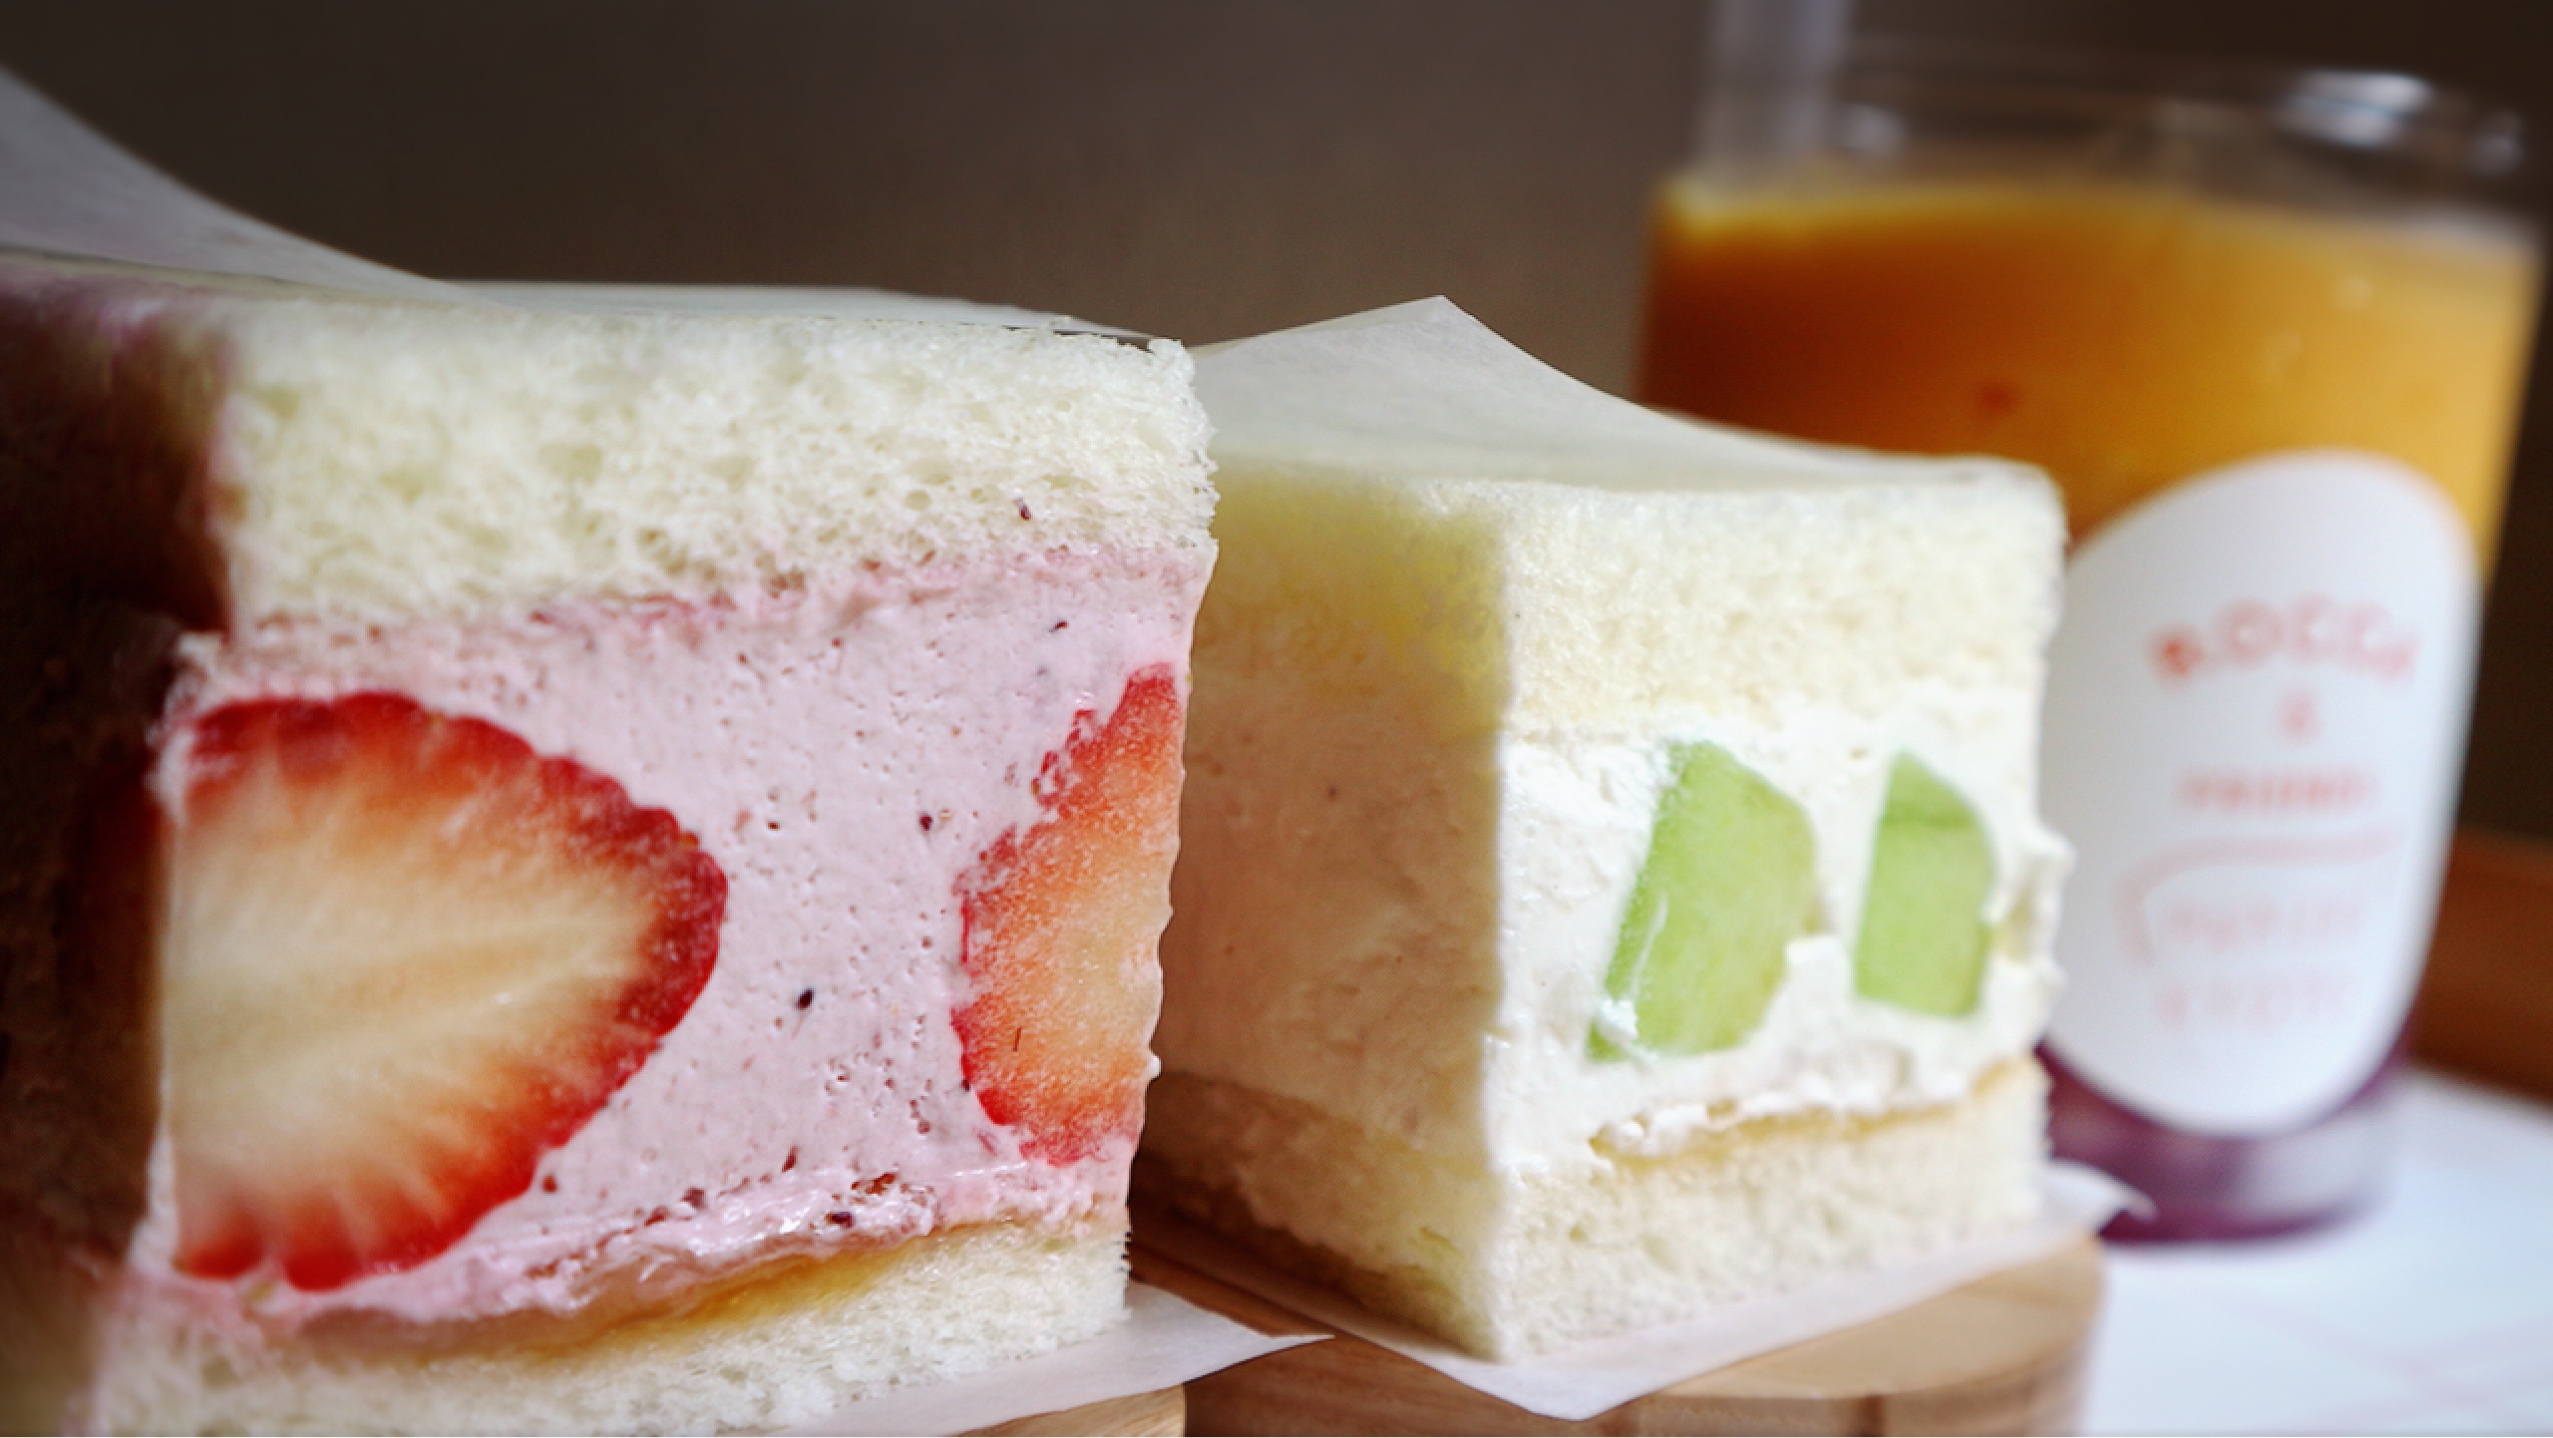 Cute Fruits Sandwiches